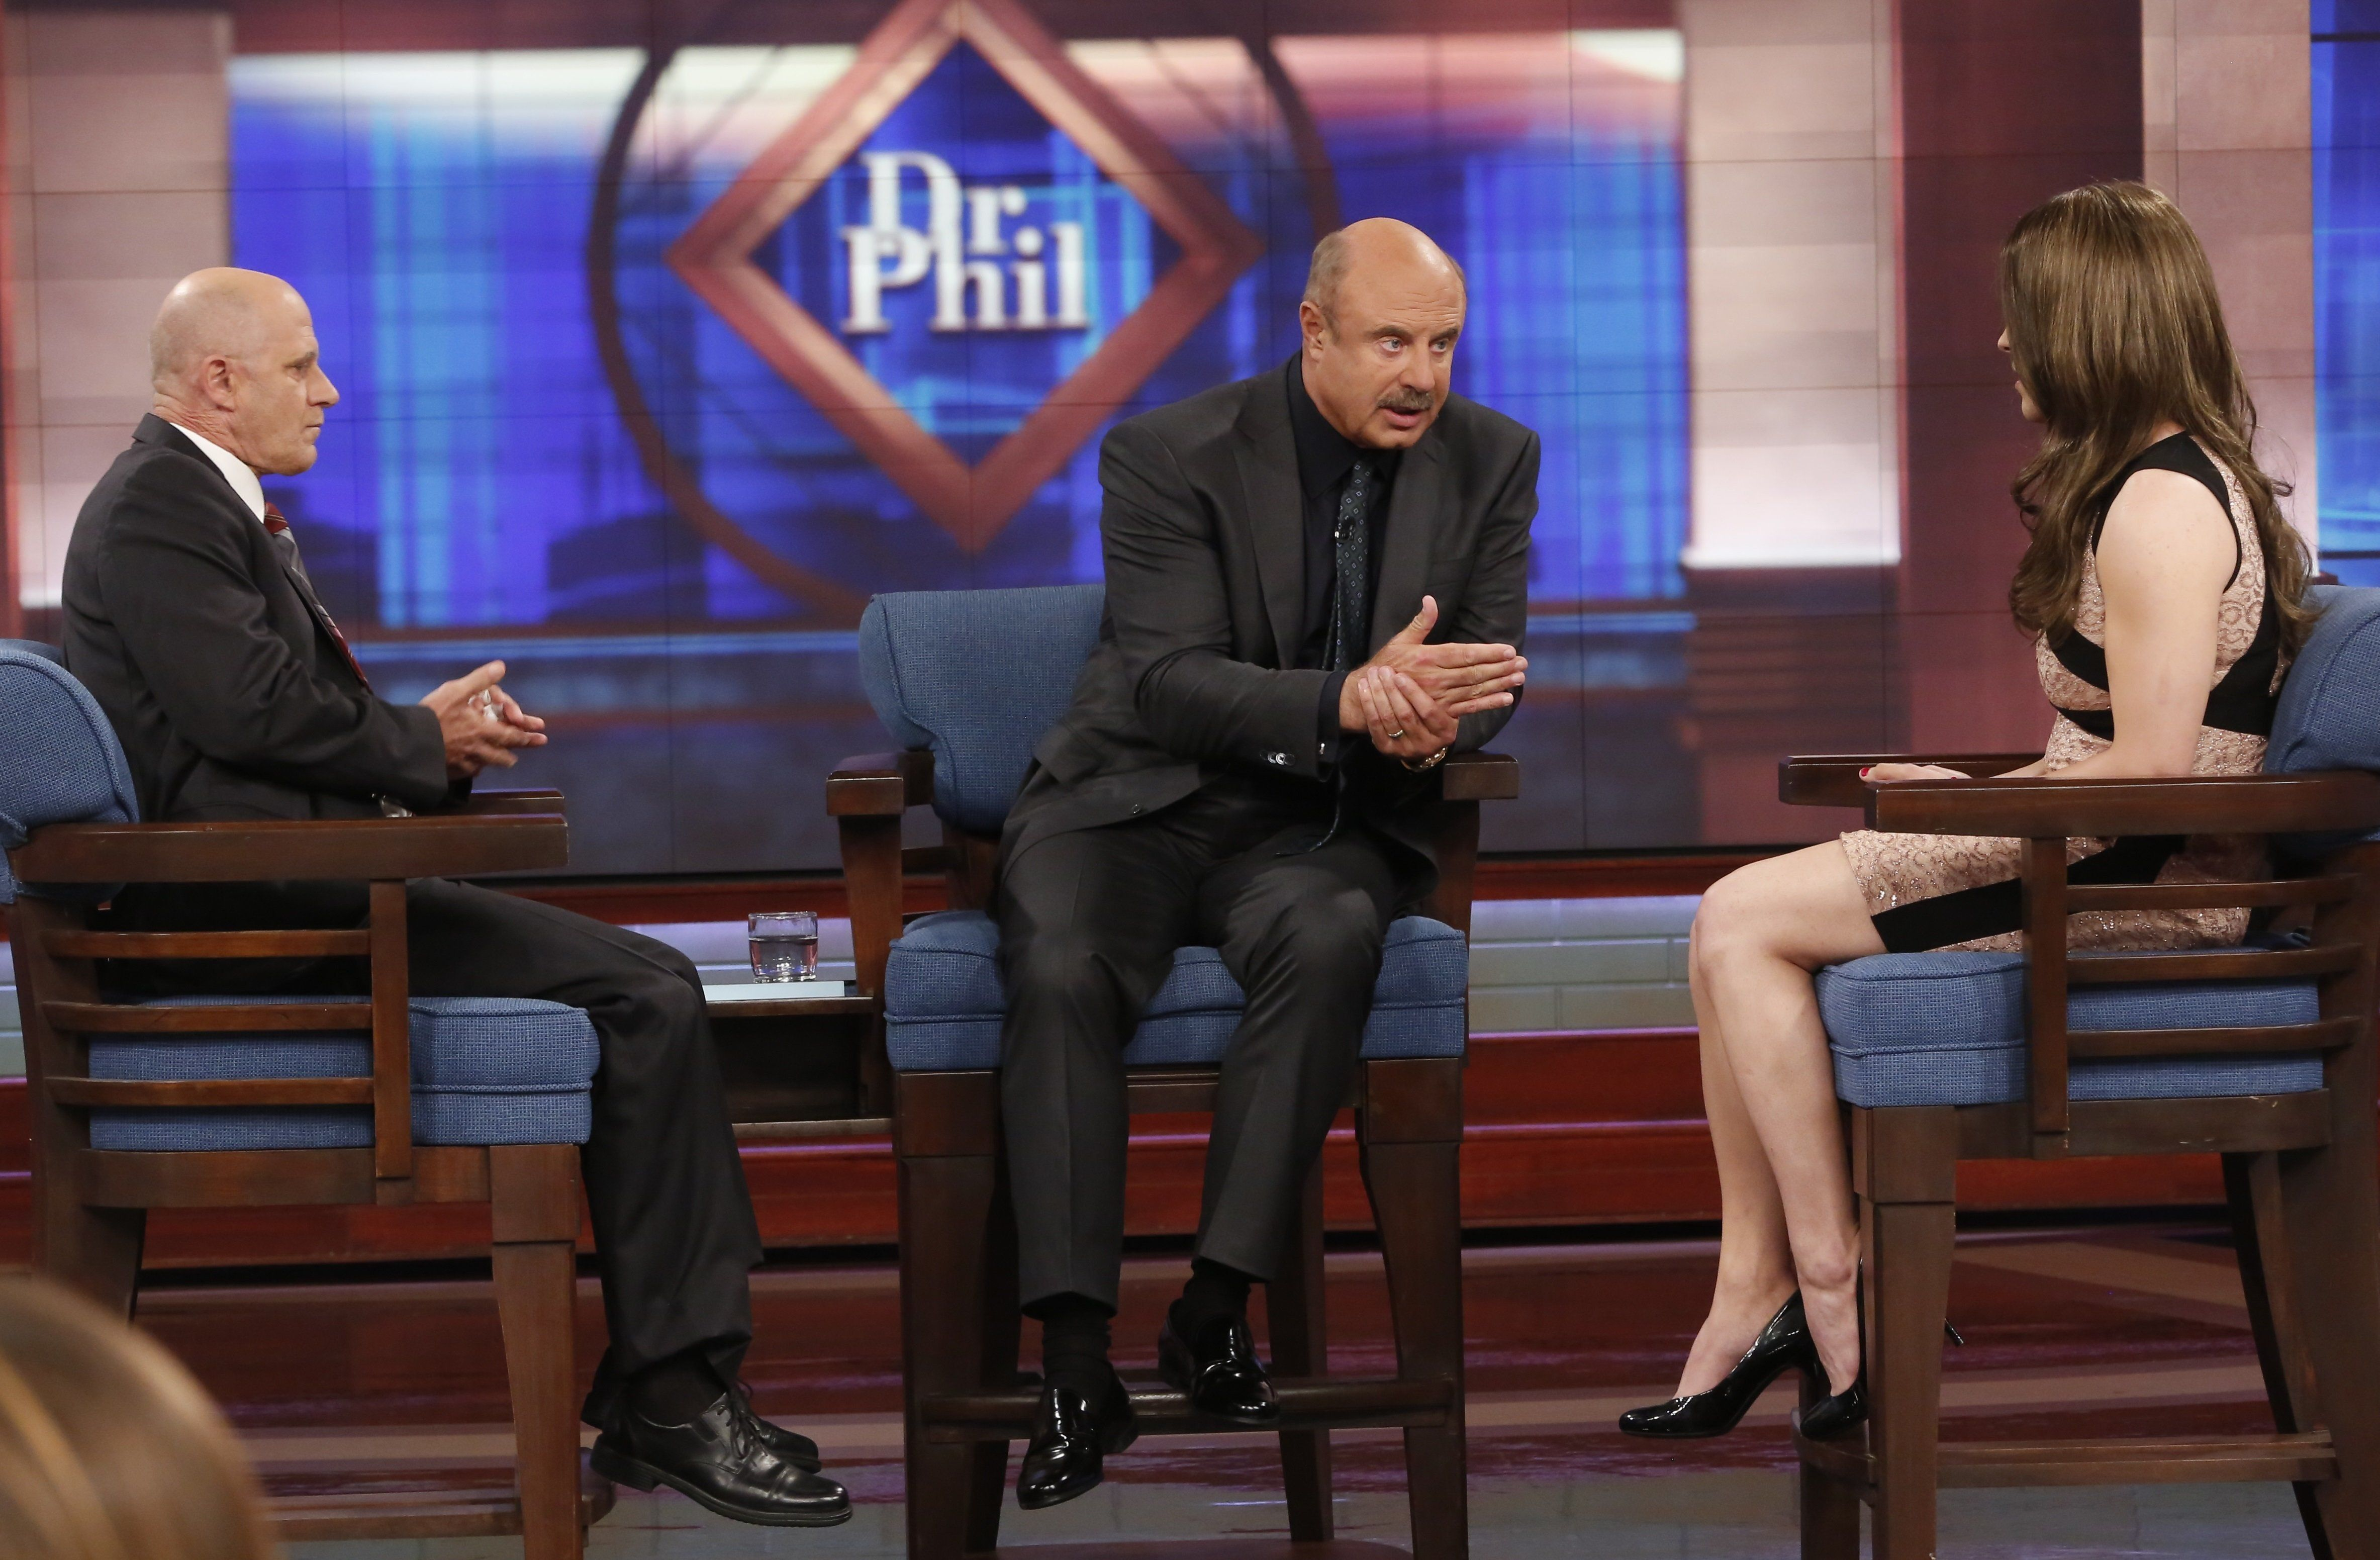 Dr phil transsexual full episode